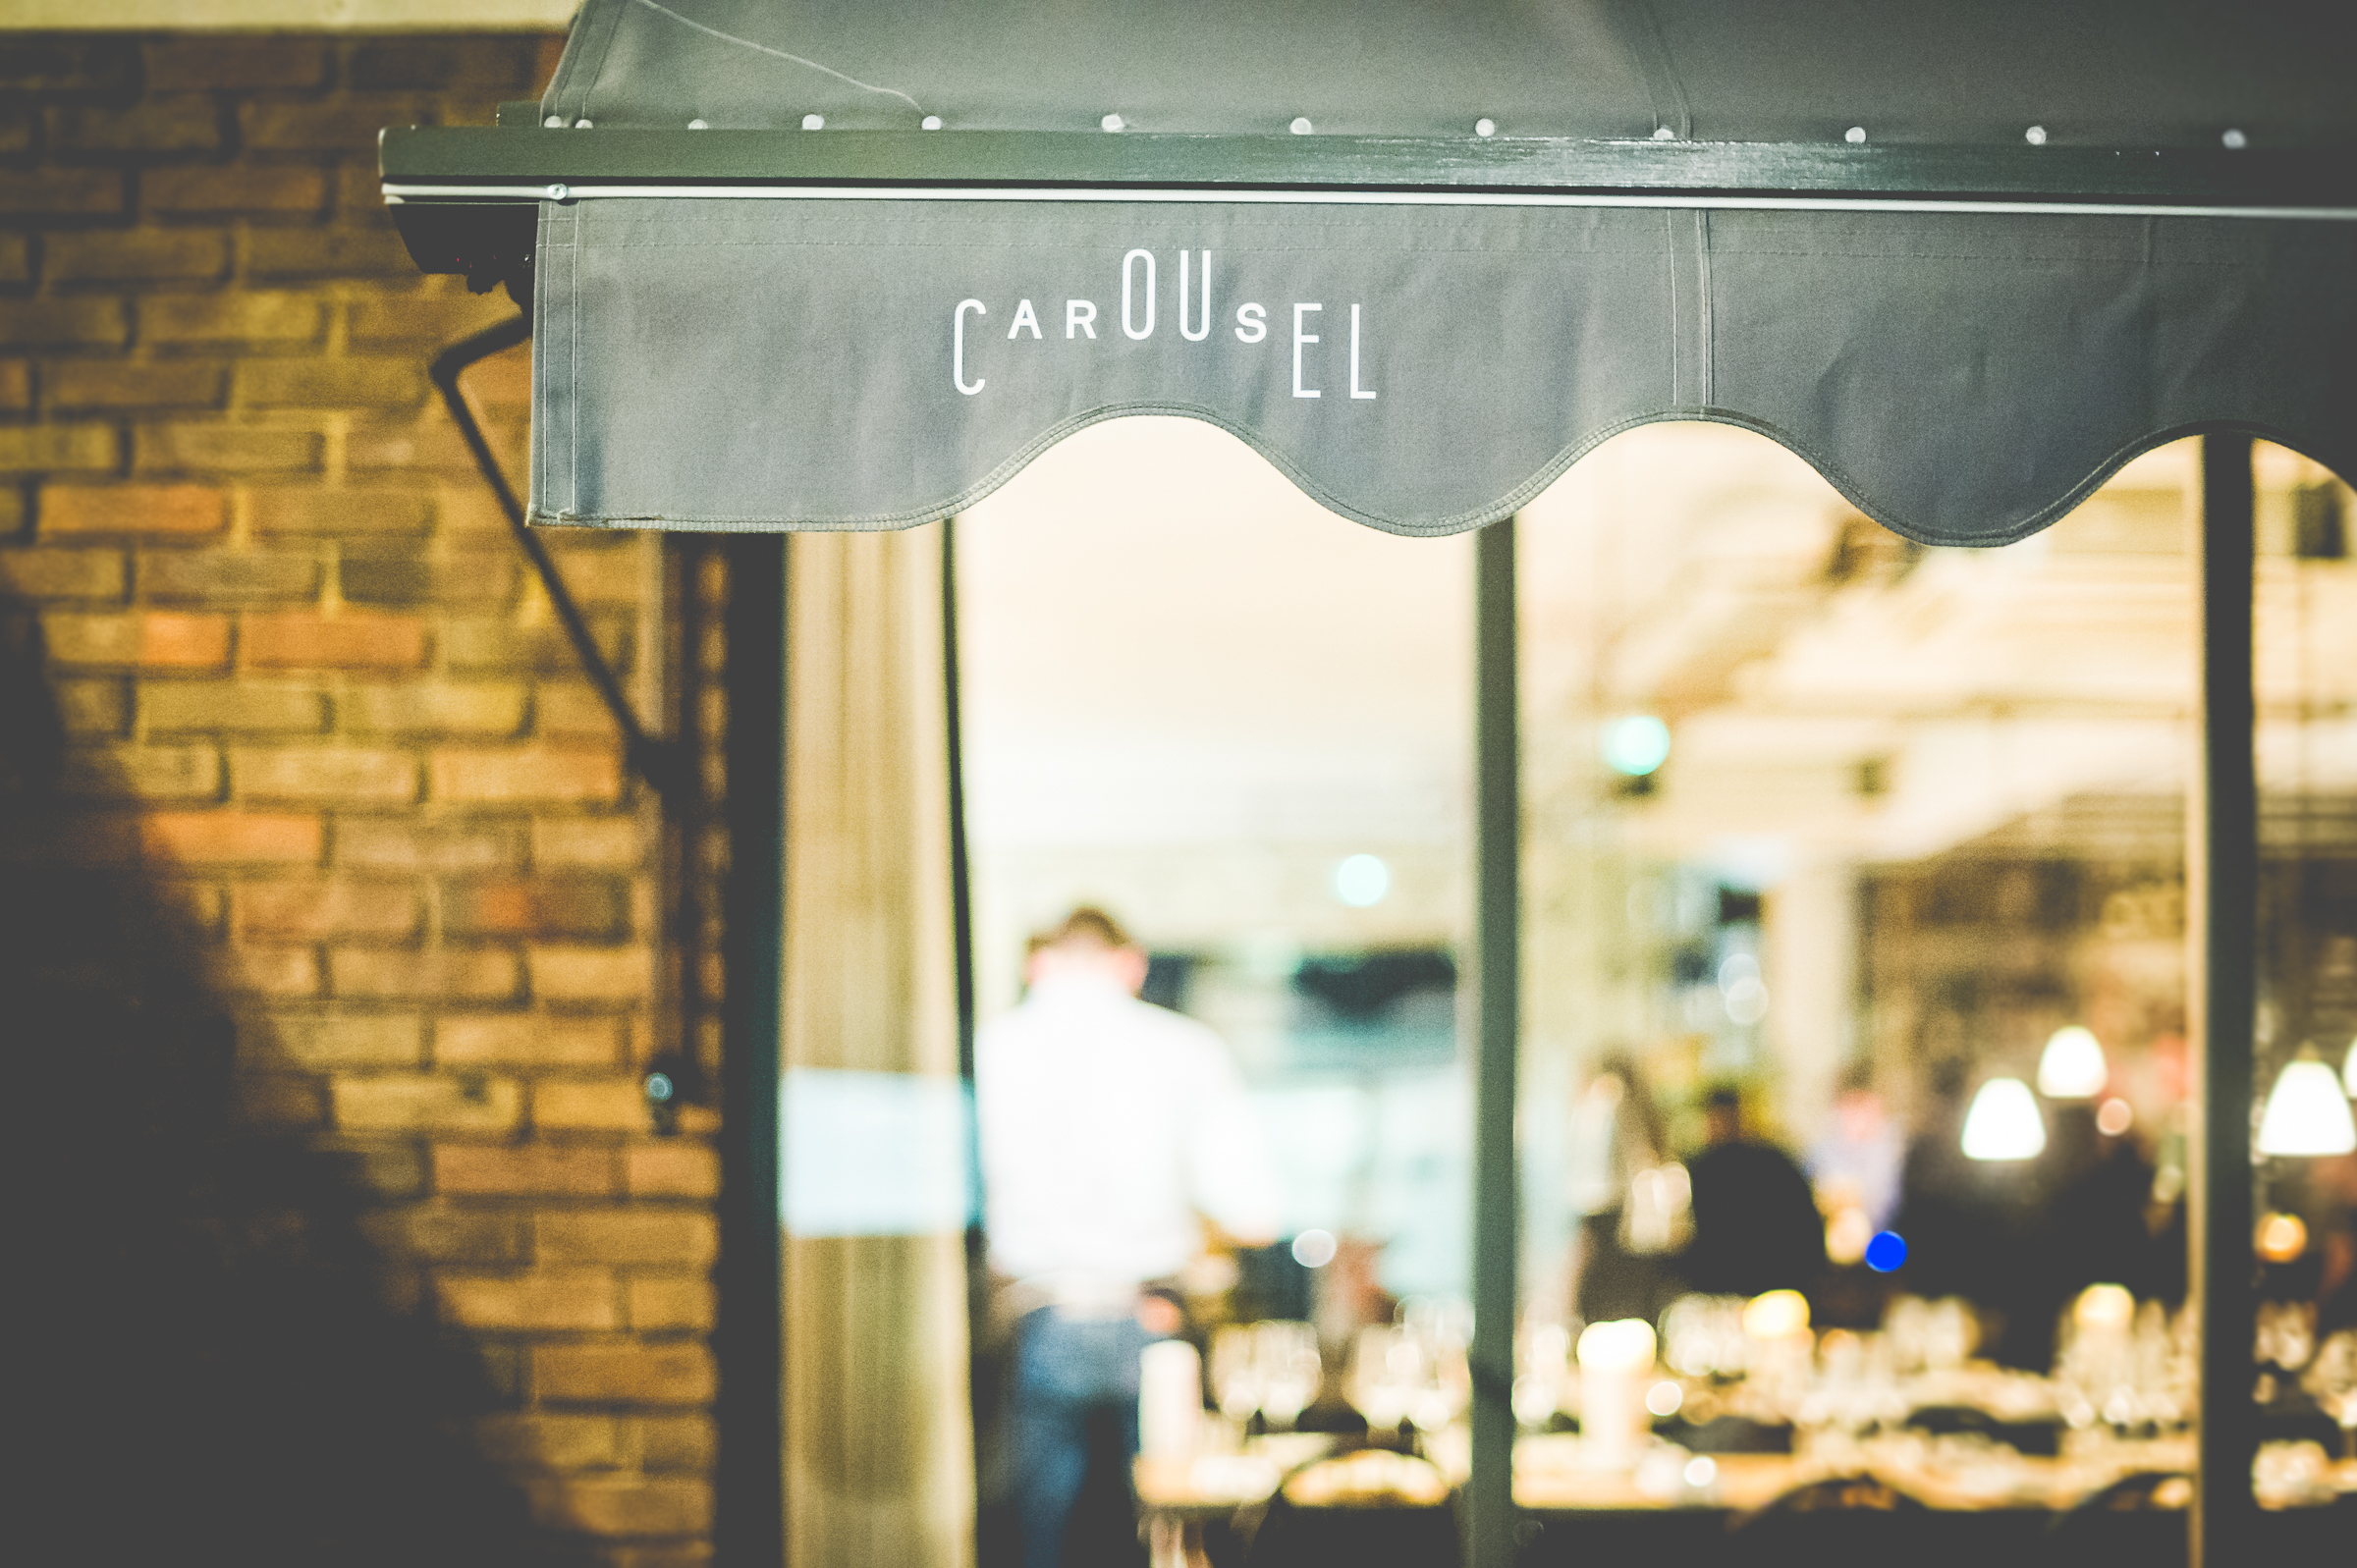 Three international chefs will cook a week long residency each at Carousel, London.